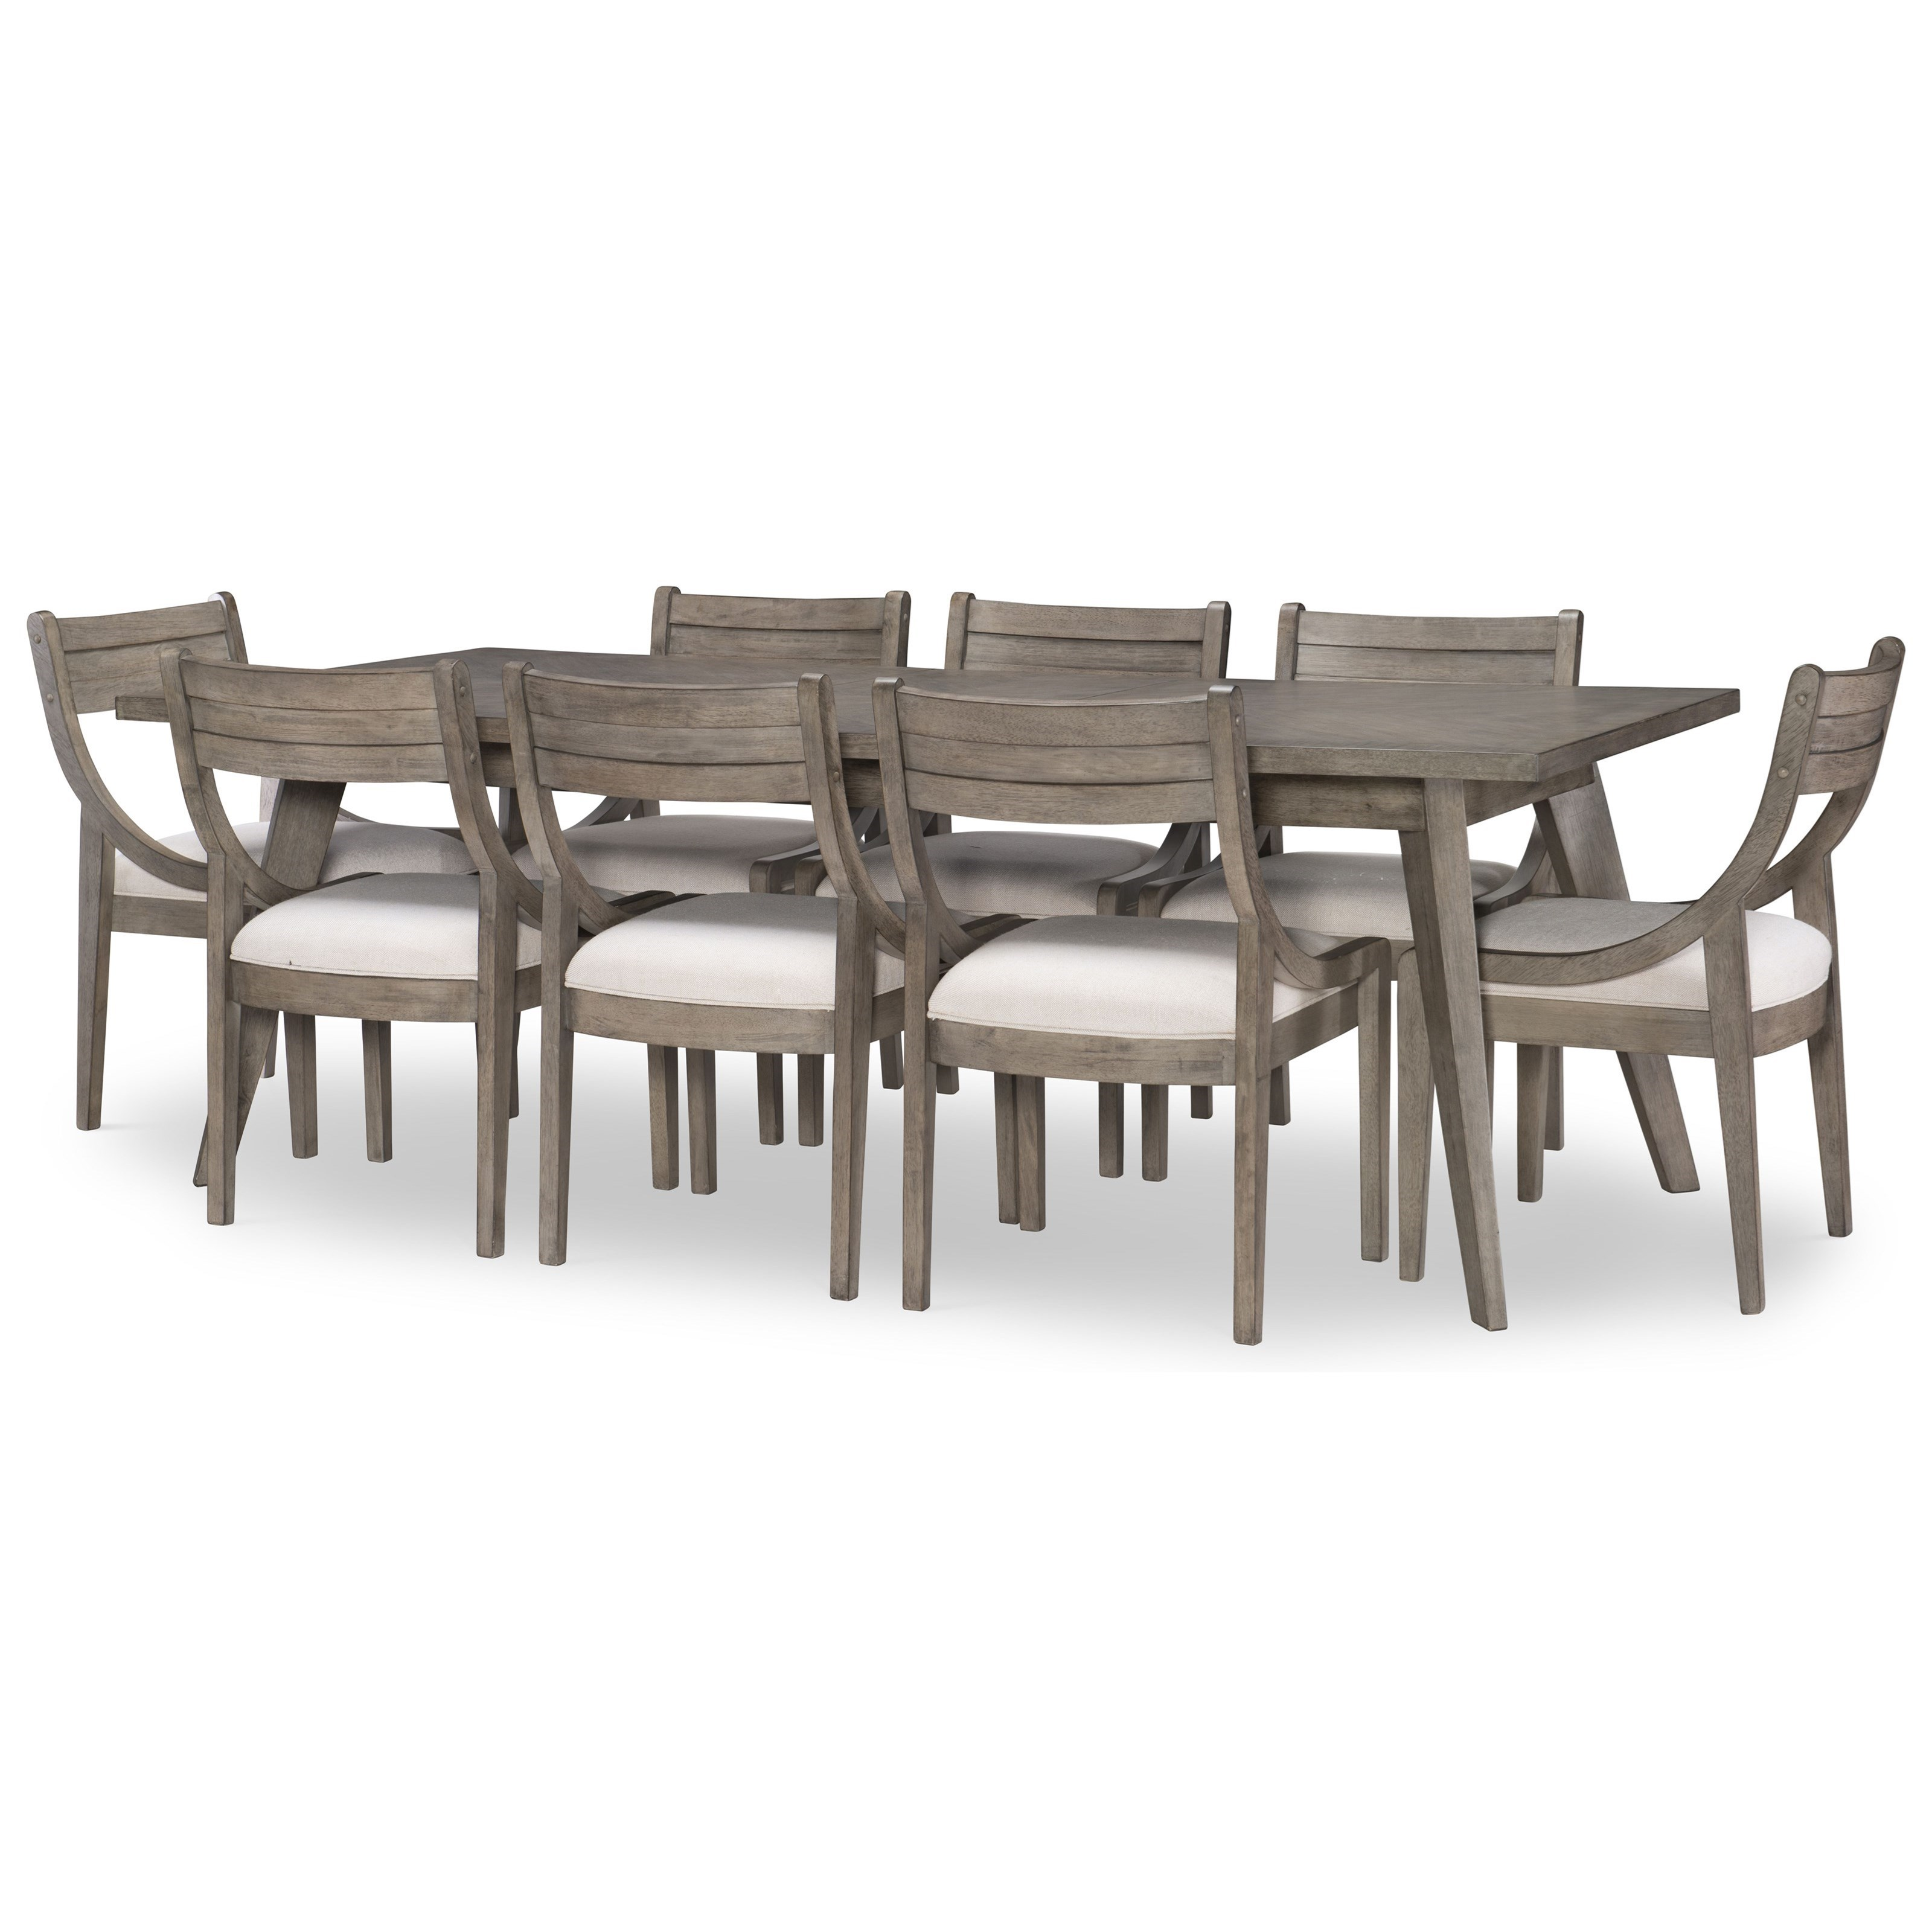 Greystone 9-Piece Rectangular Table and Chair Set by Legacy Classic at Stoney Creek Furniture